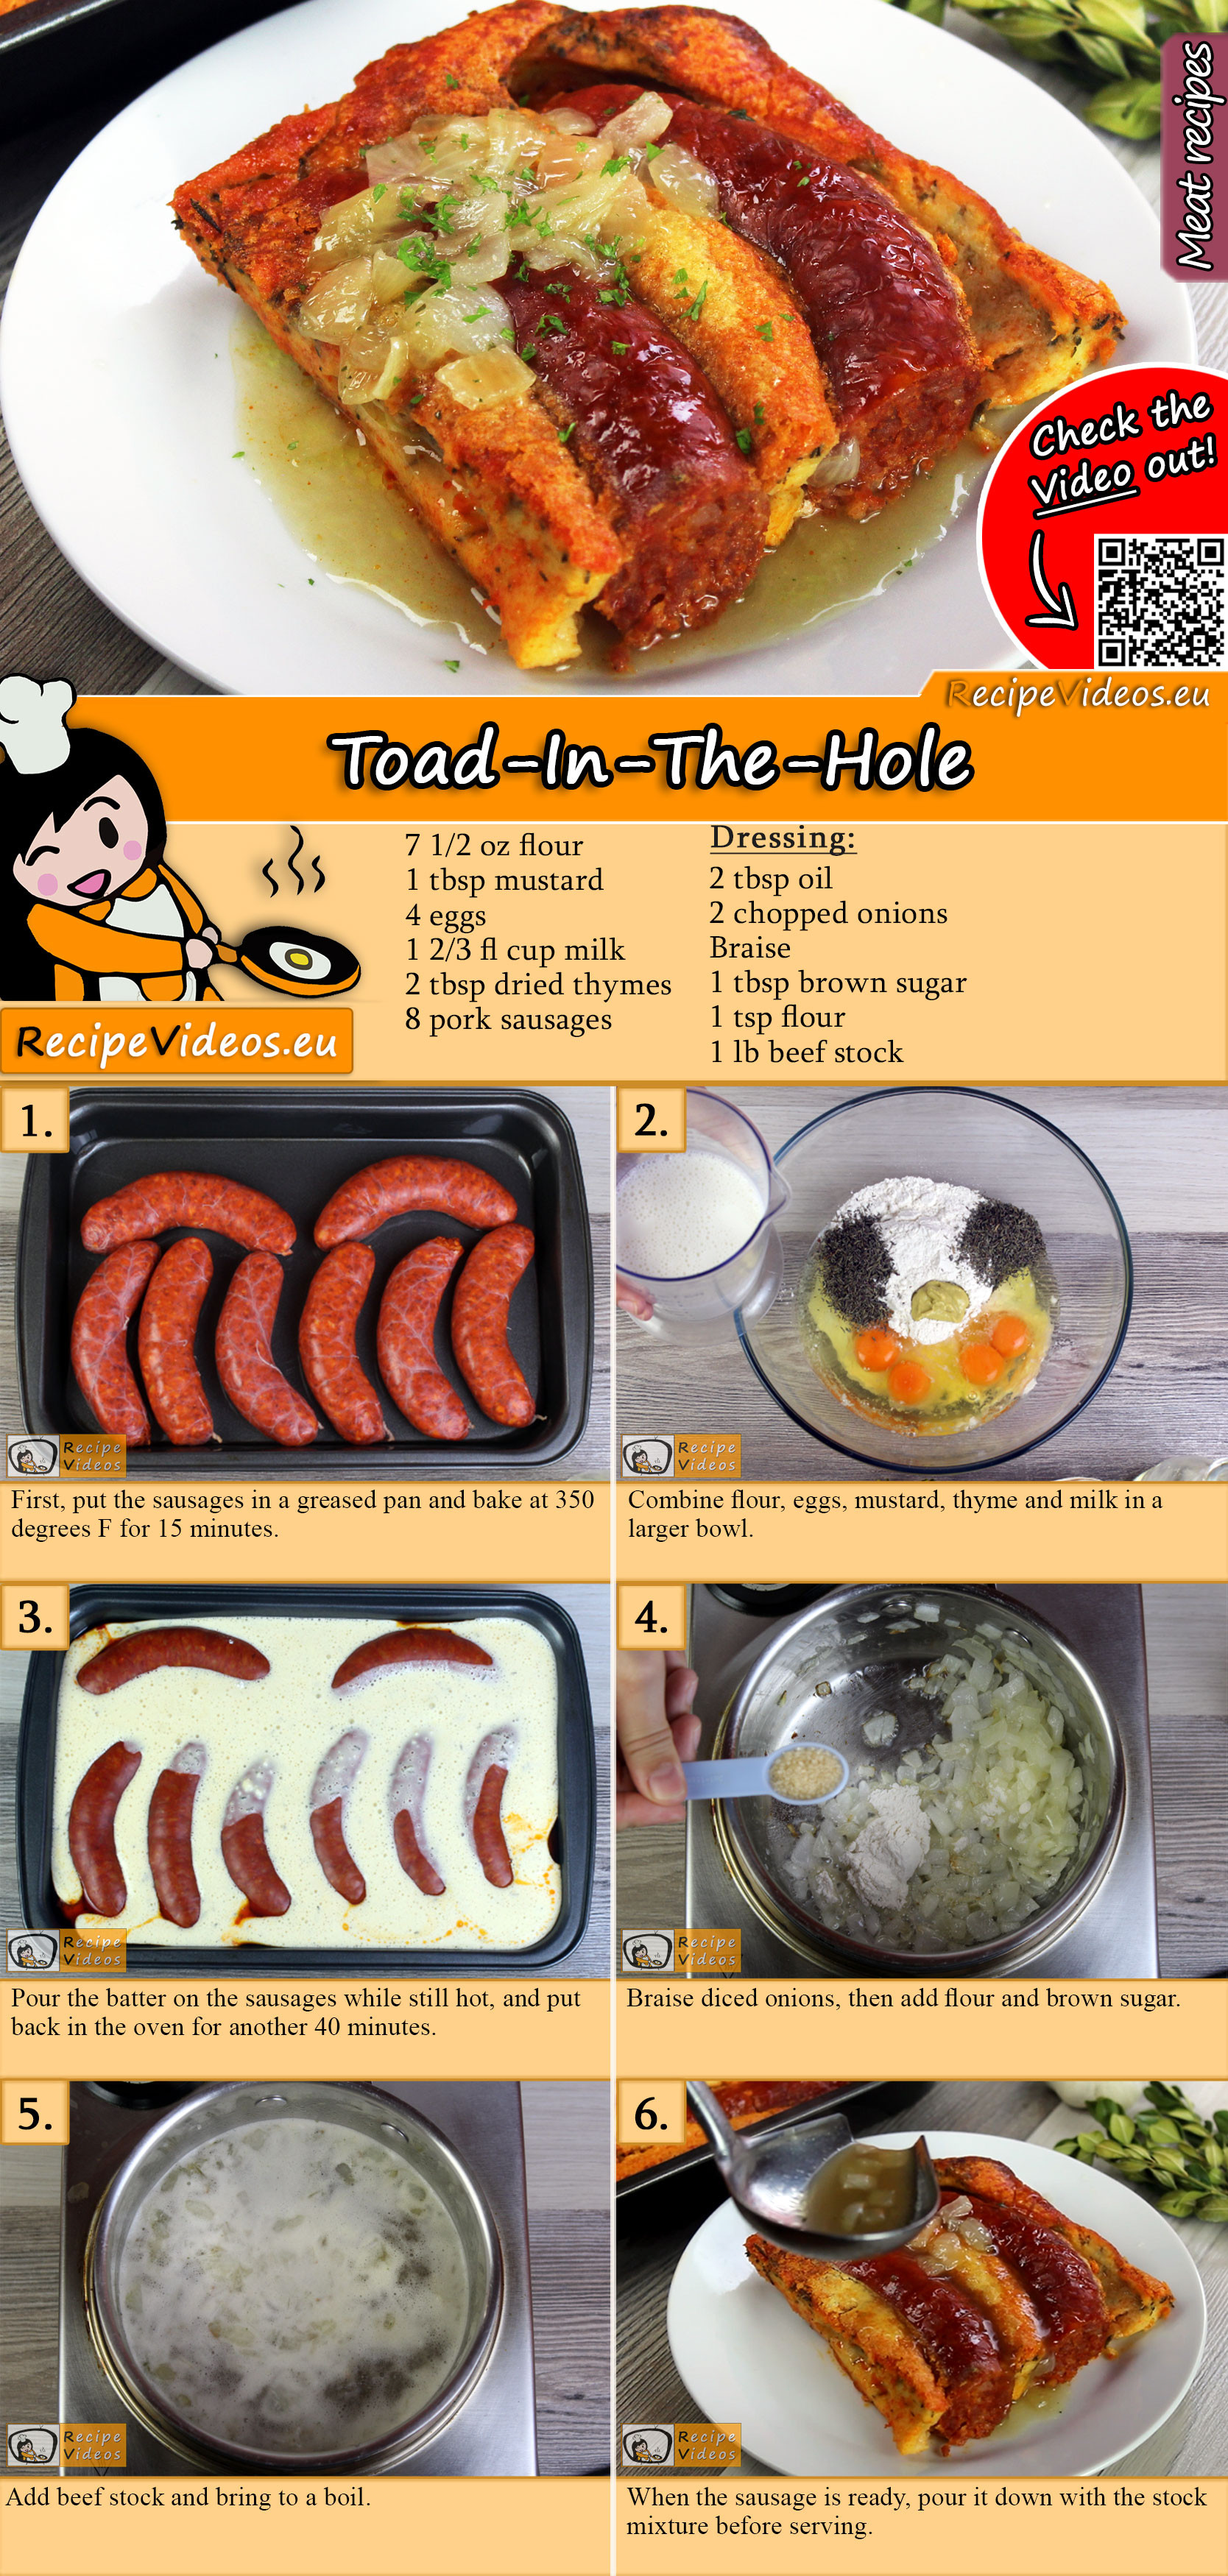 Toad-In-The-Hole recipe with video